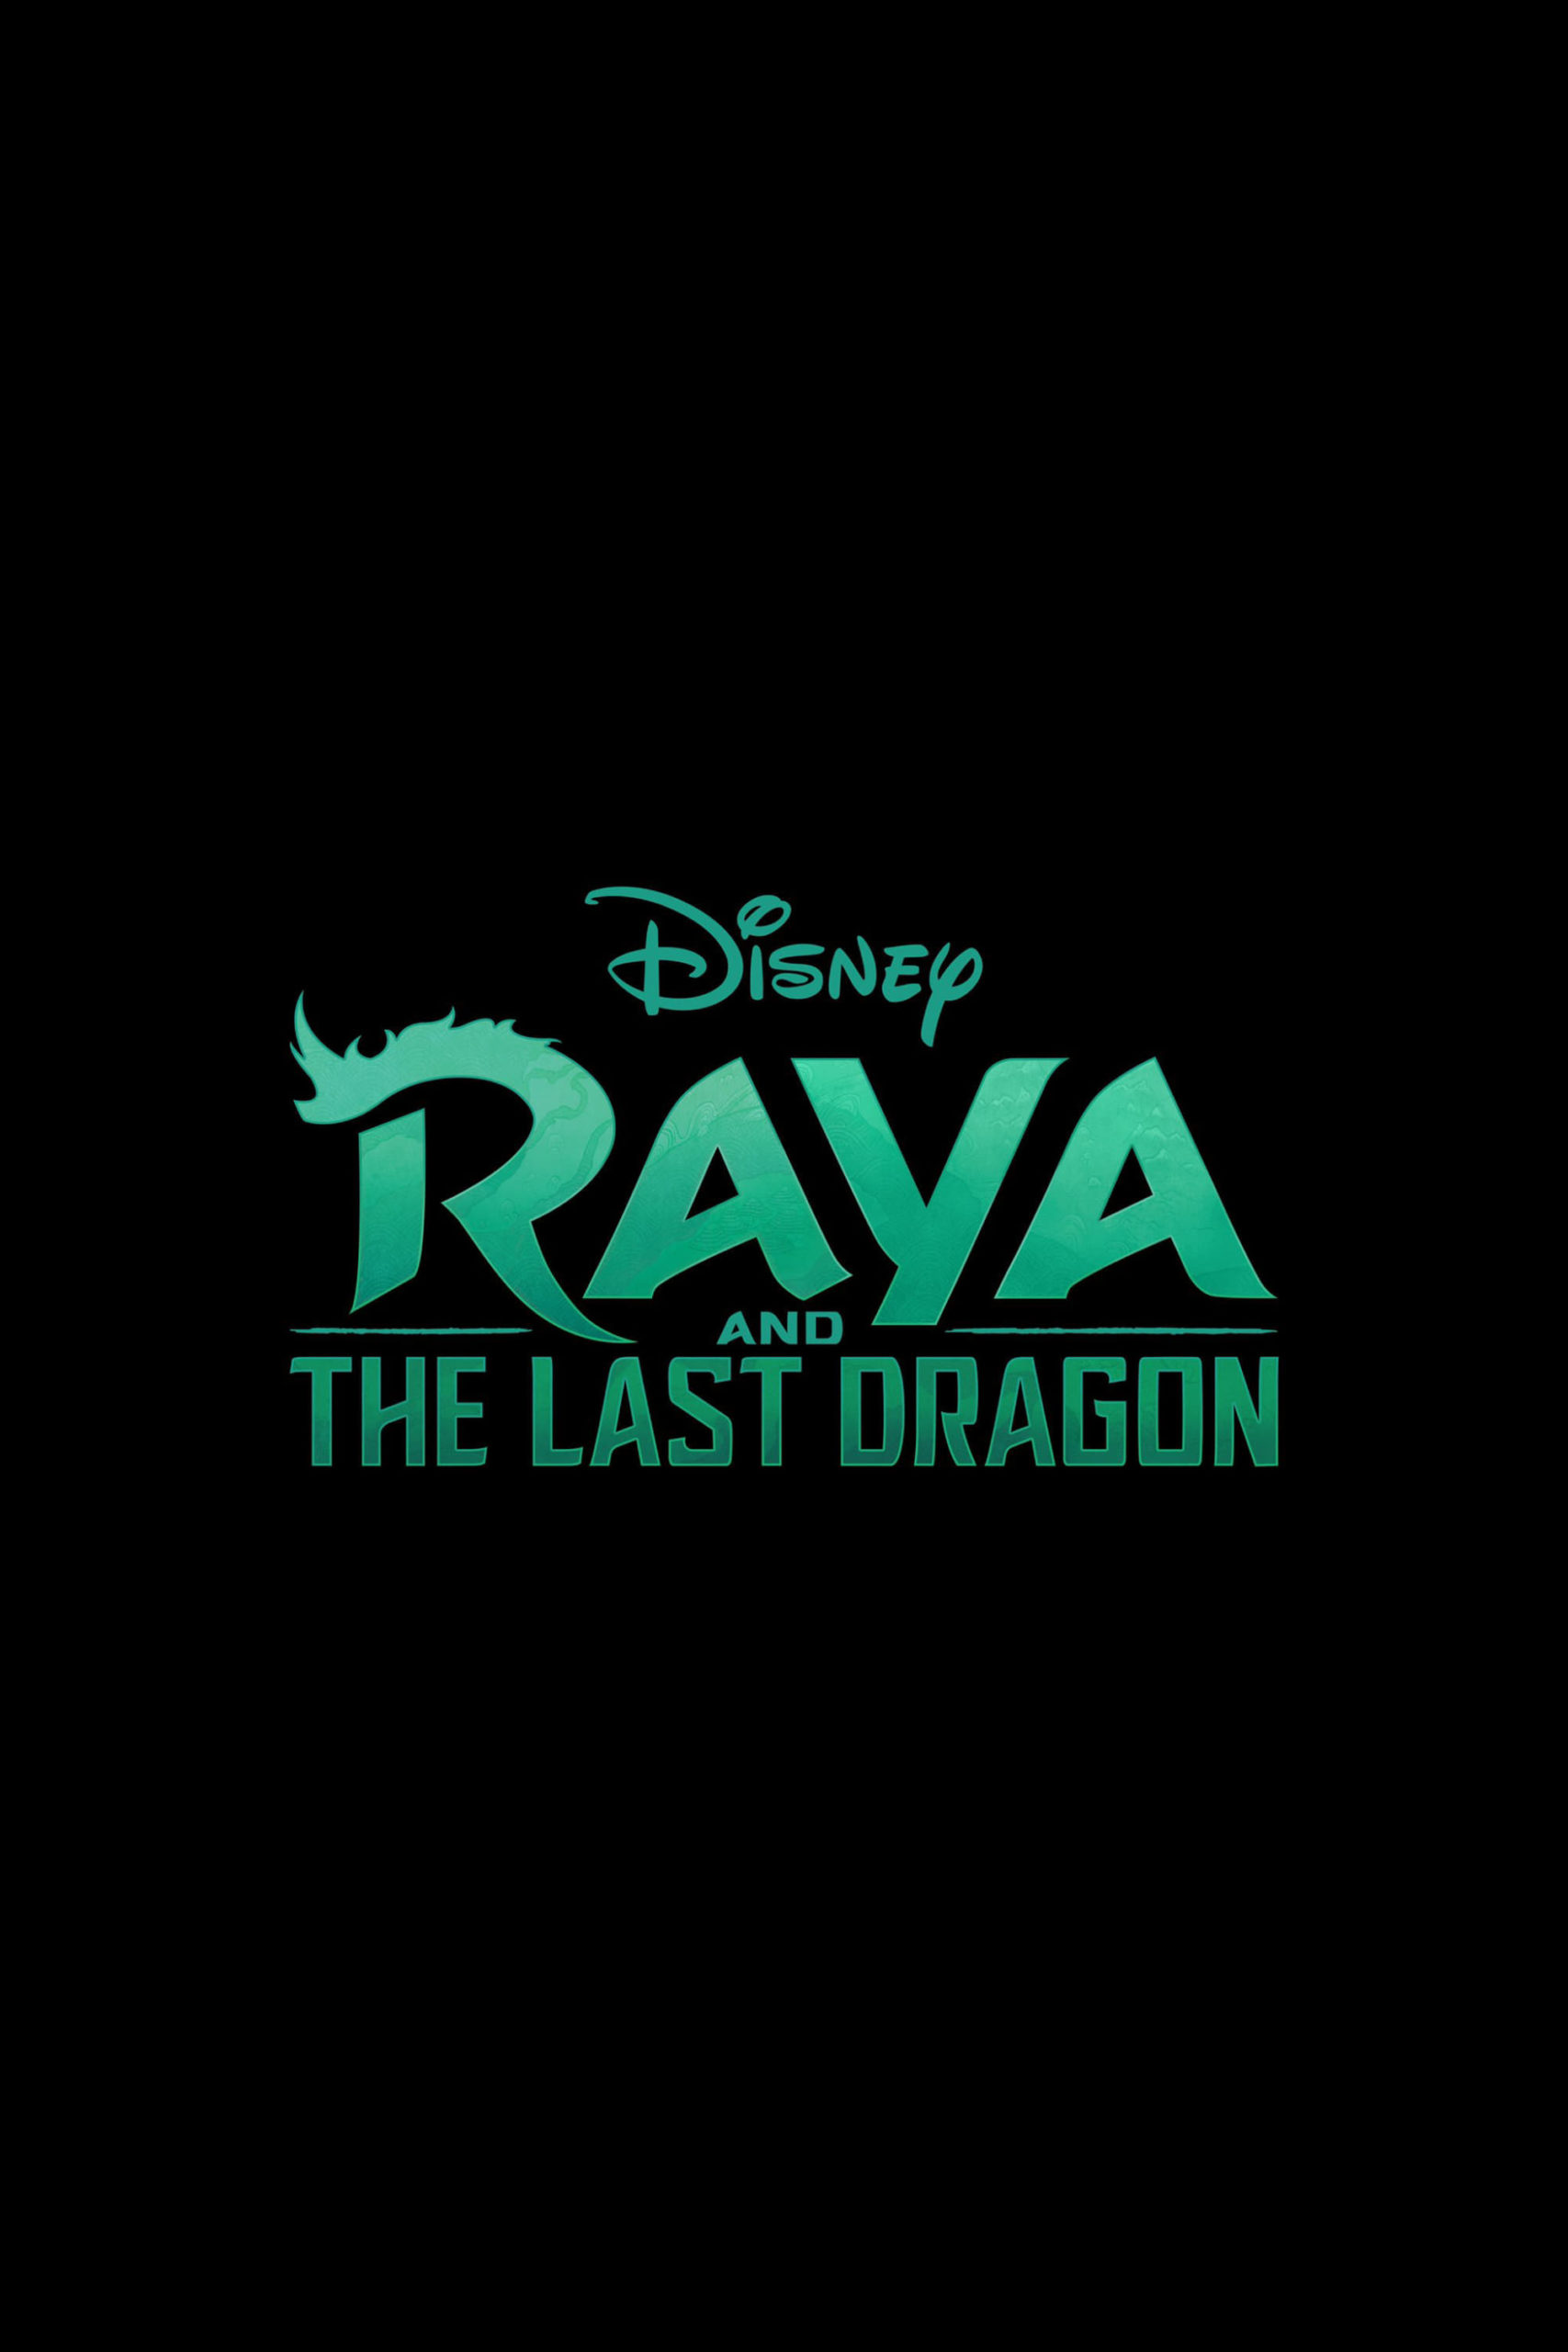 Raya And The Last Dragon Title Movie Poster